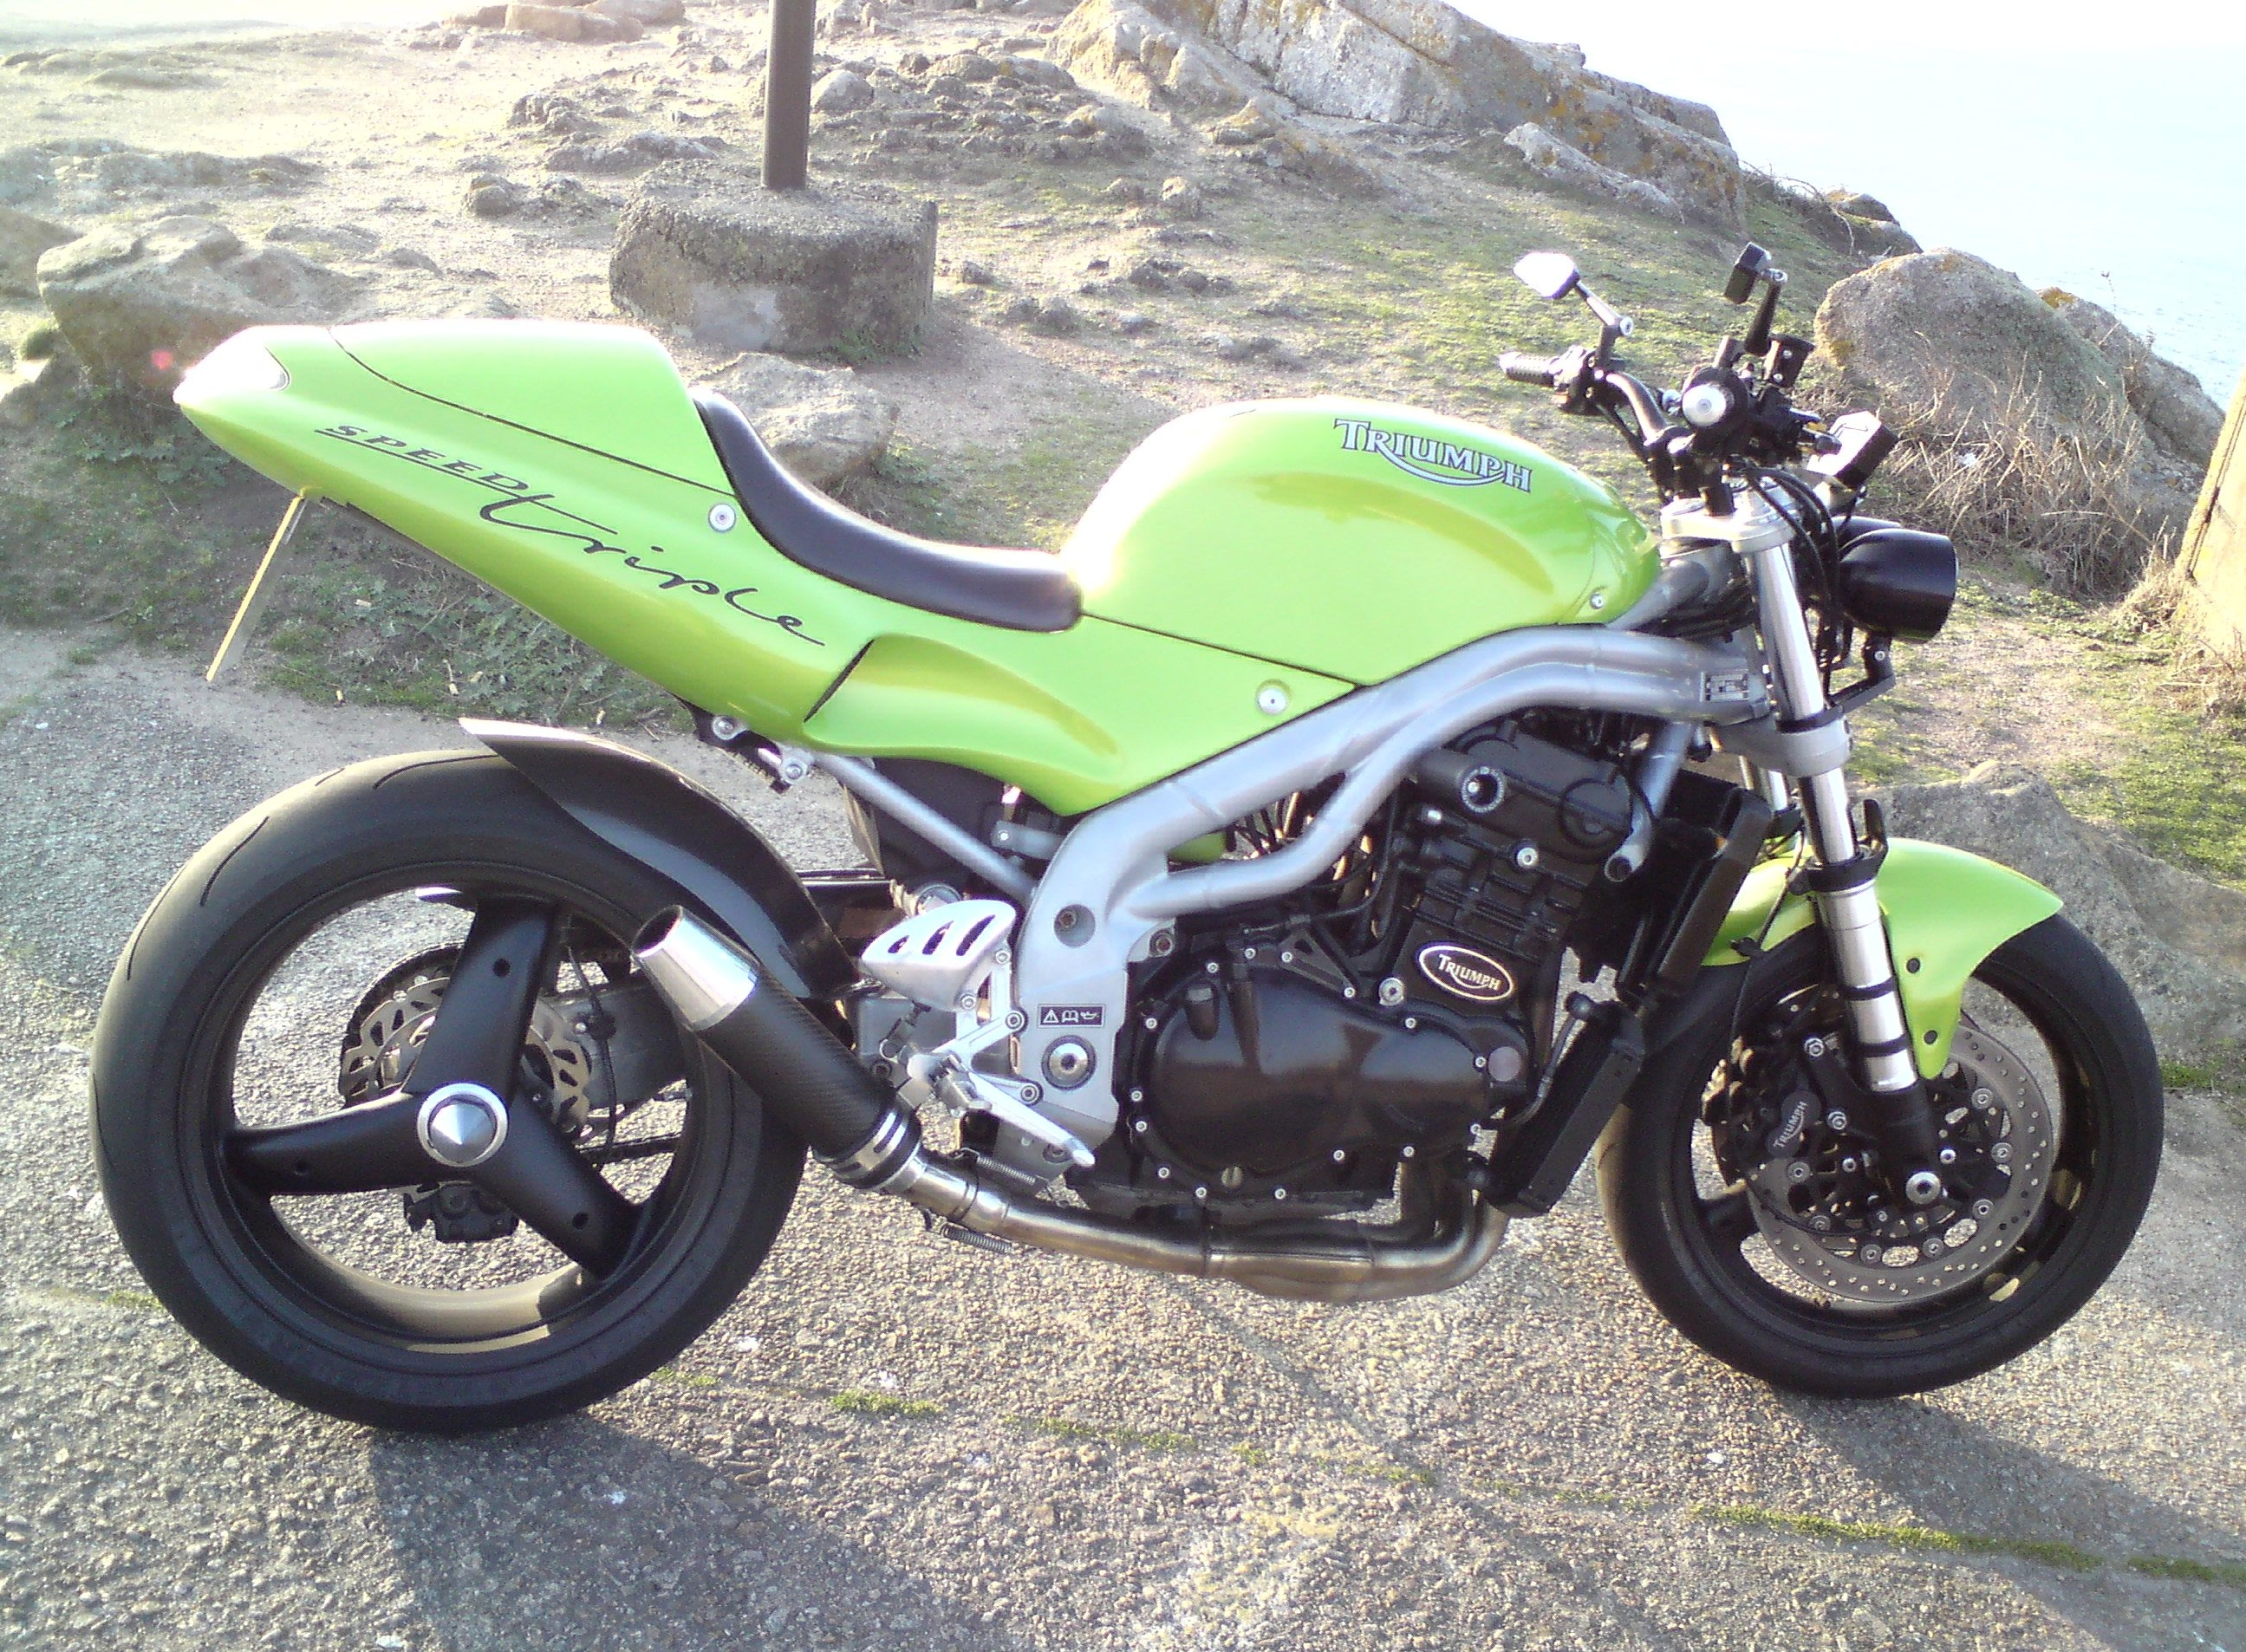 1999 Triumph Speed Triple #1